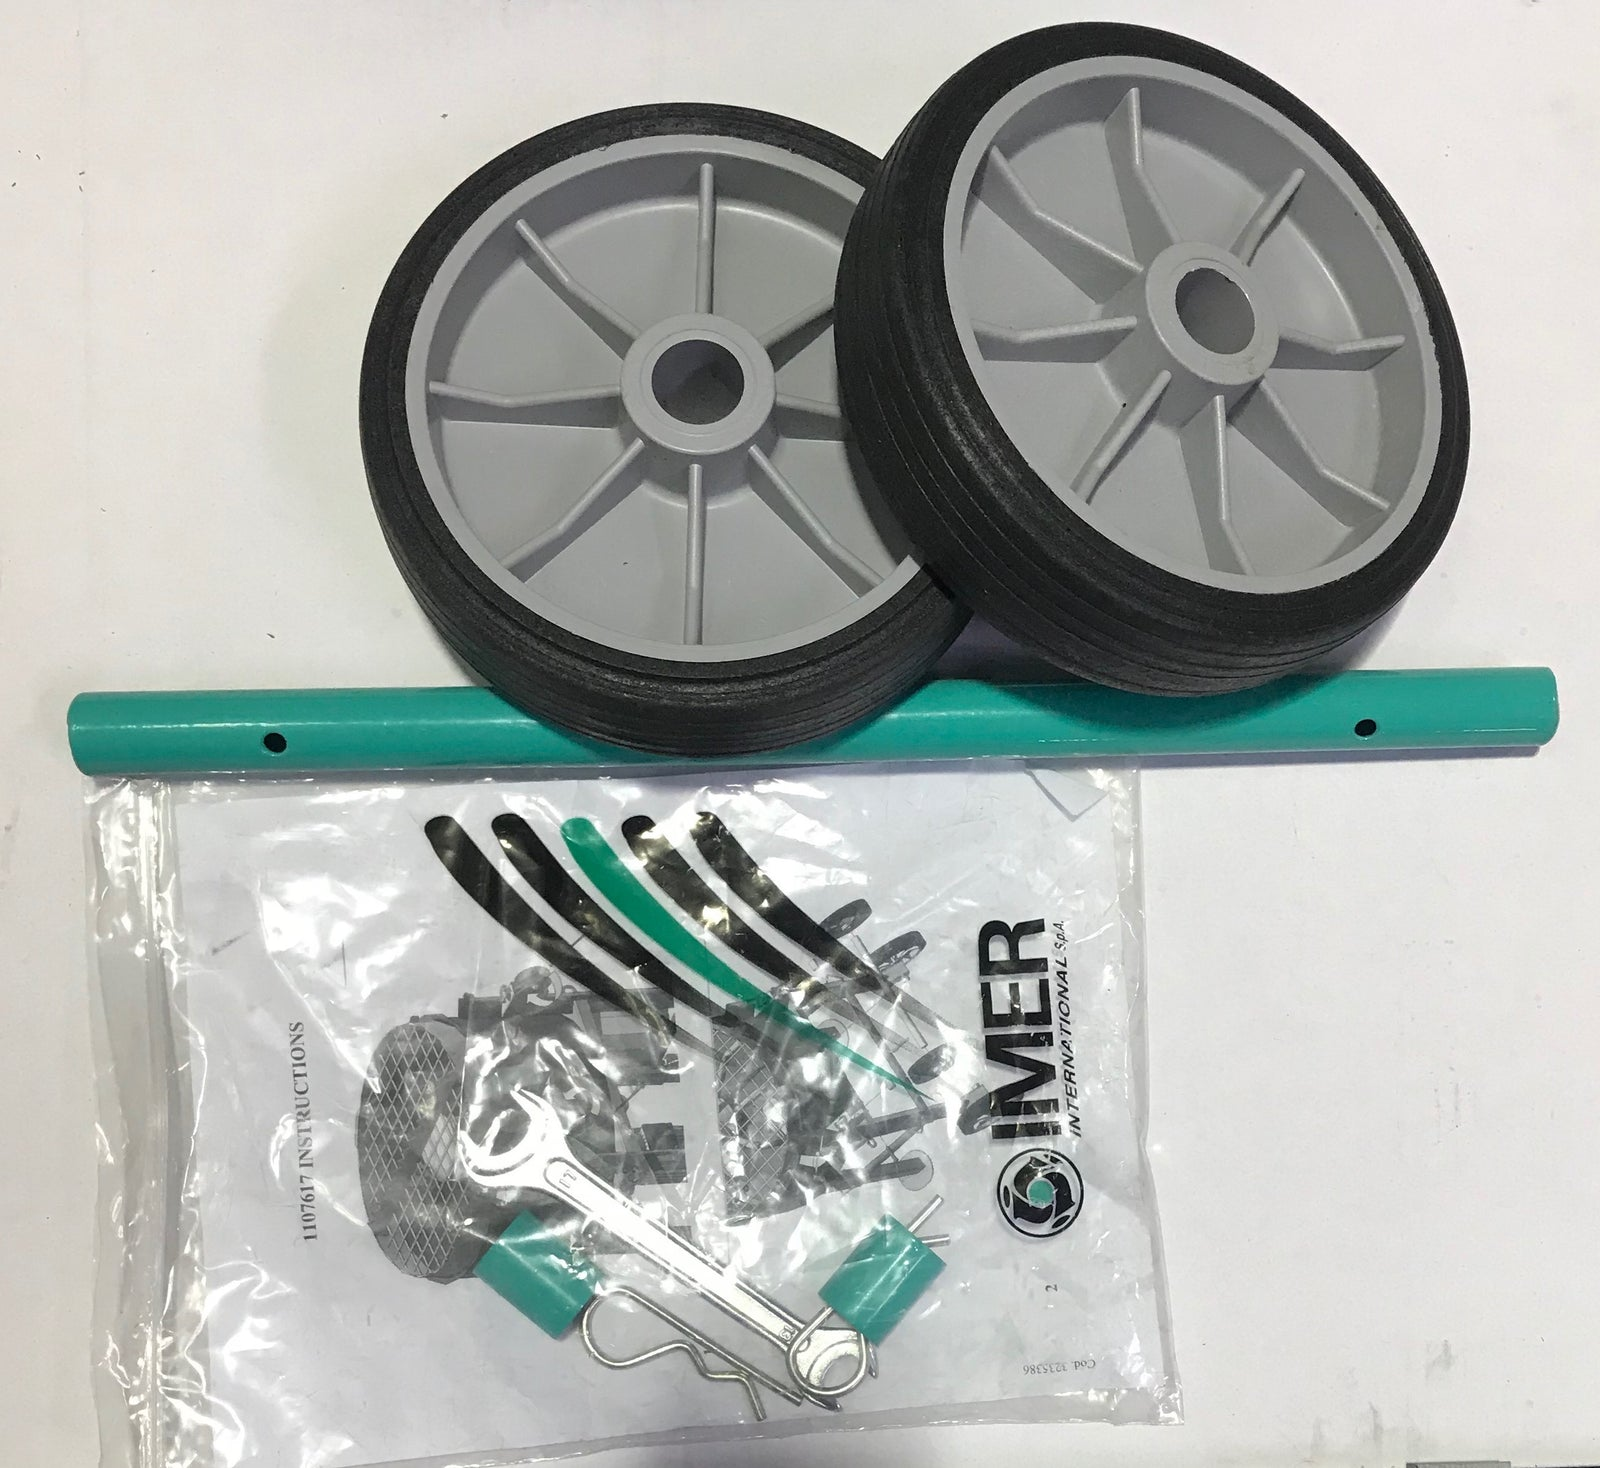 IMER Mortarman 120 Plus Wheel Kit Upgrade